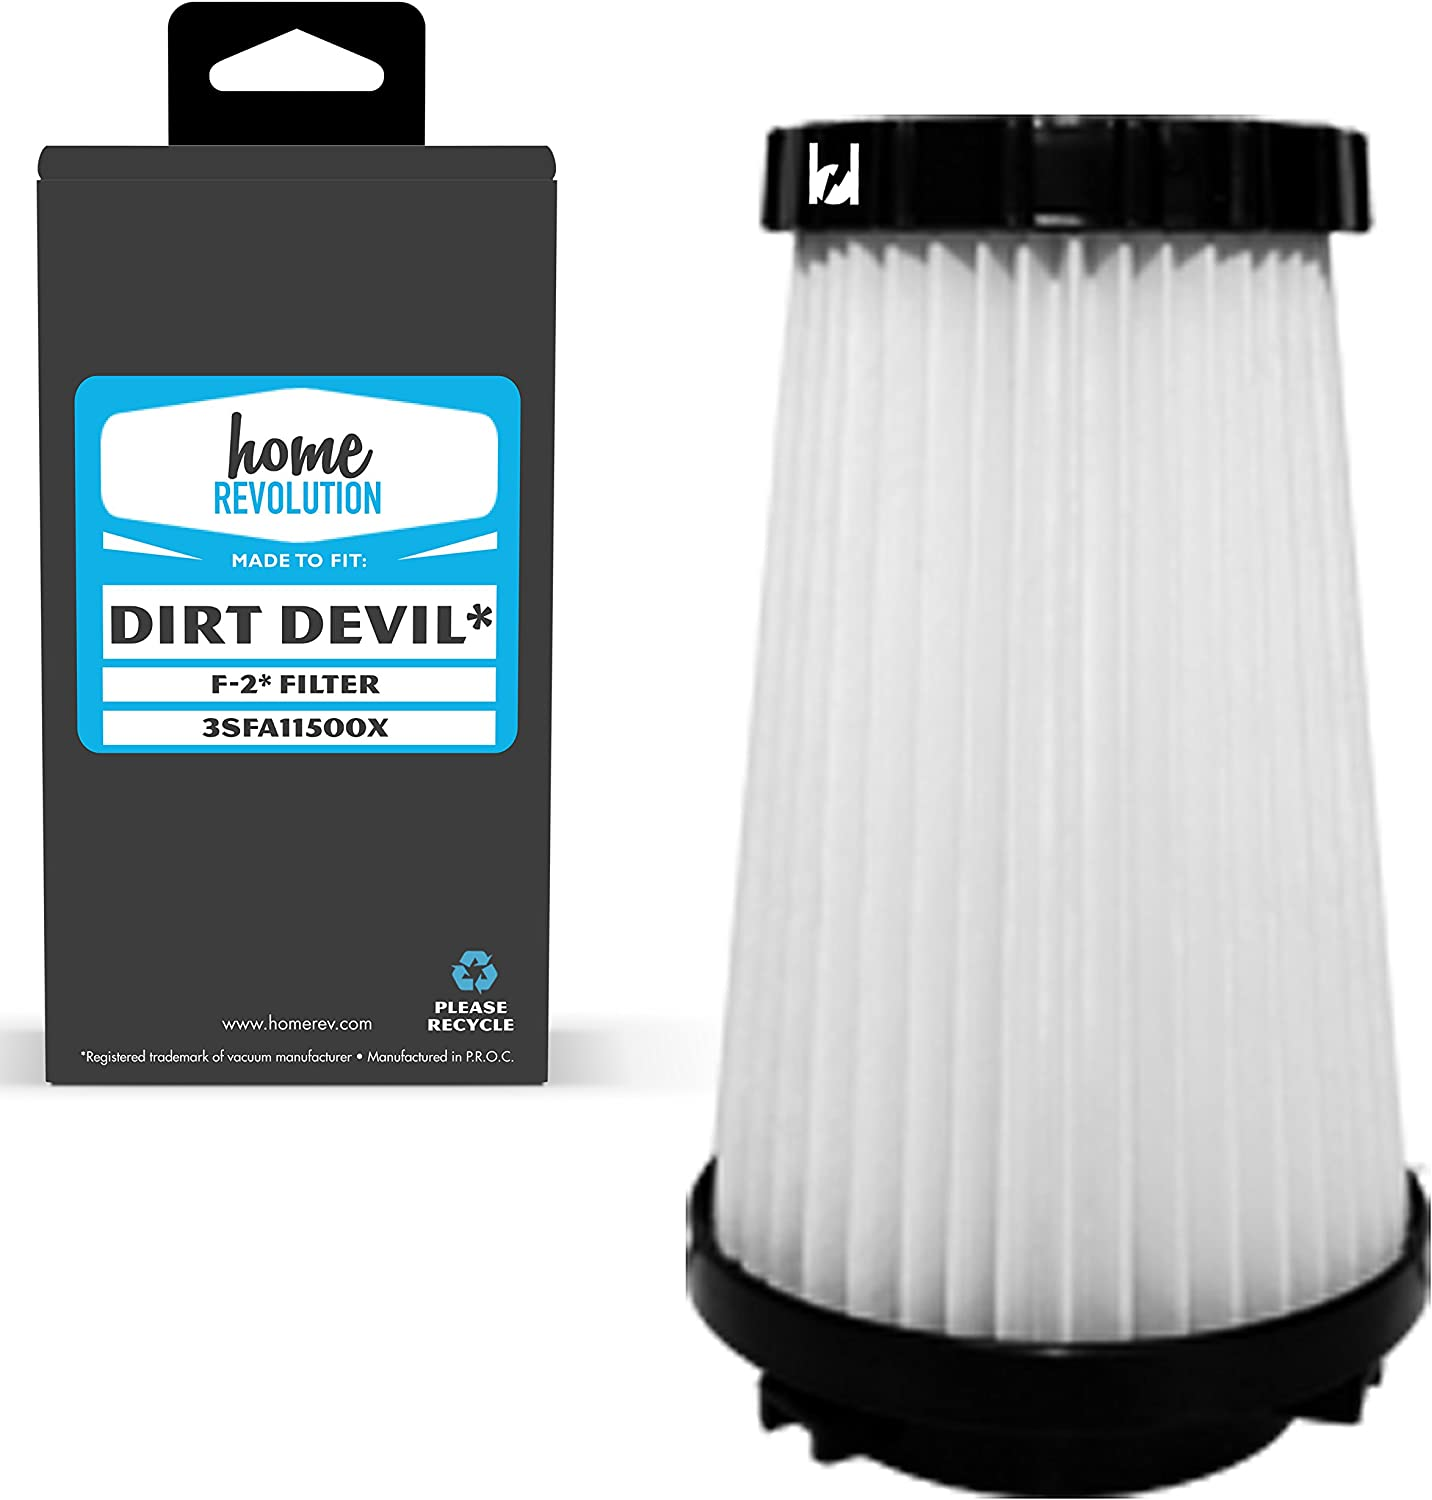 Home Revolution Replacement HEPA Filter, Fits Dirt Devil M084600, 084200, JM084100, 08240 & 08245 Vacuum Models and Part 3SFA11500X & 3-F5A115-00X